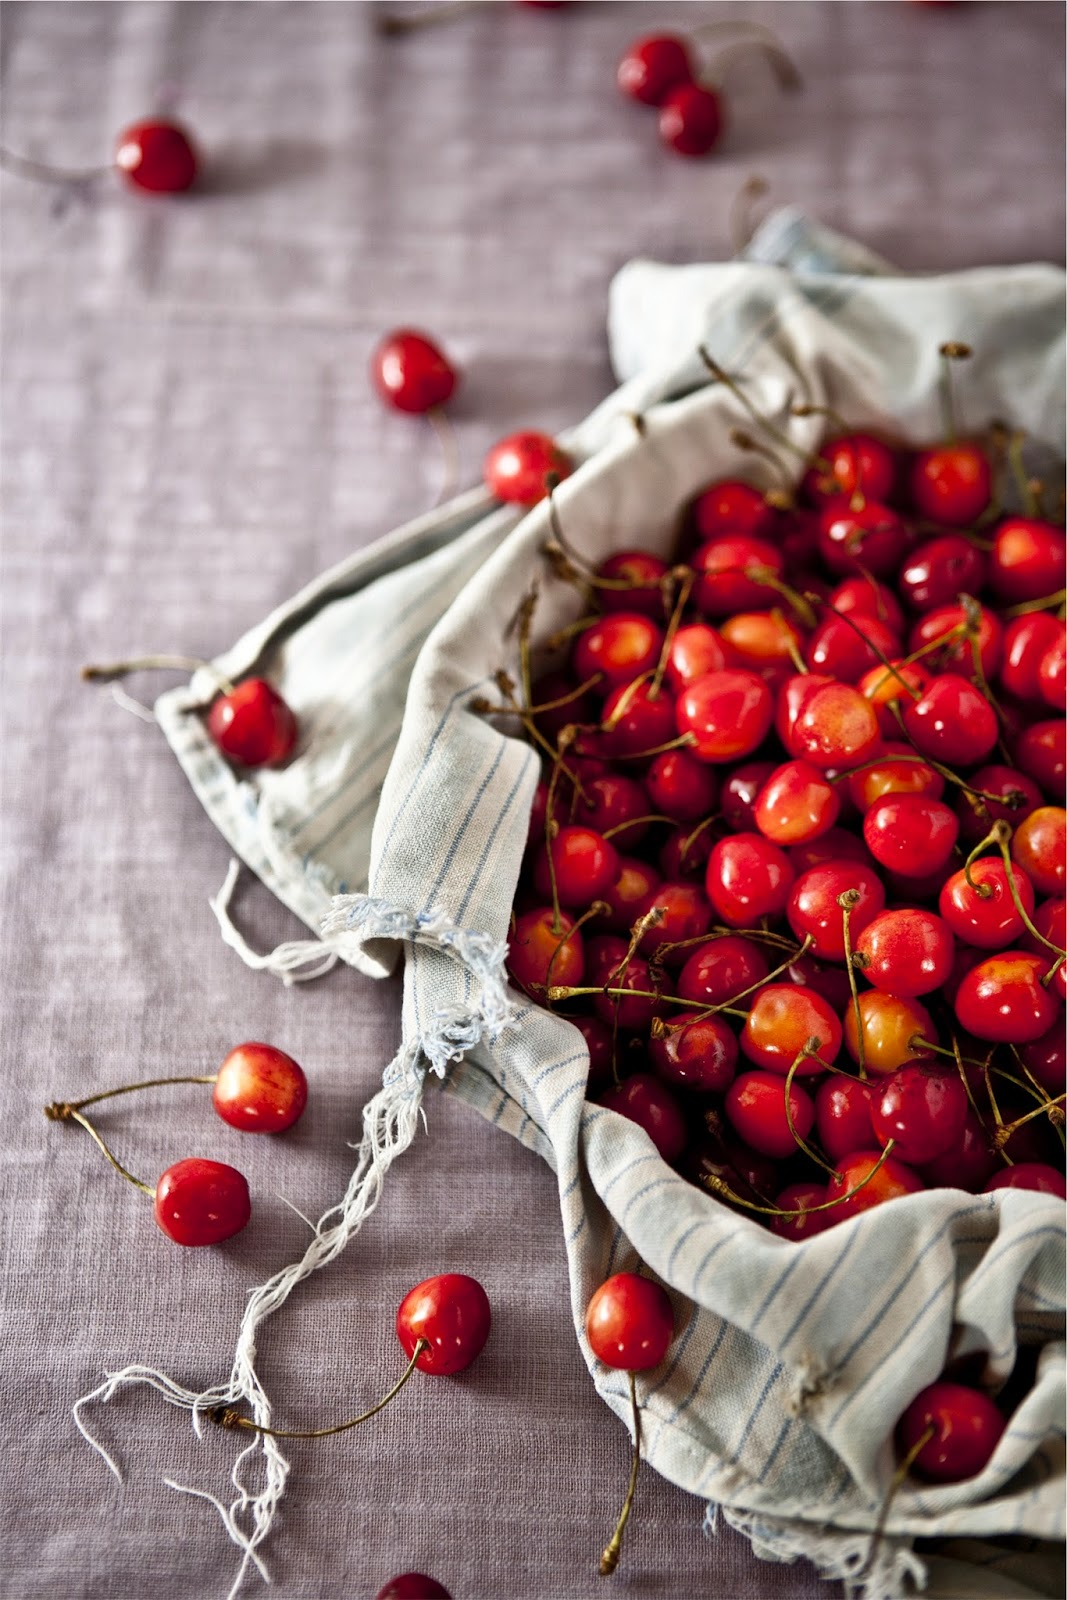 cherries, really pretty ones